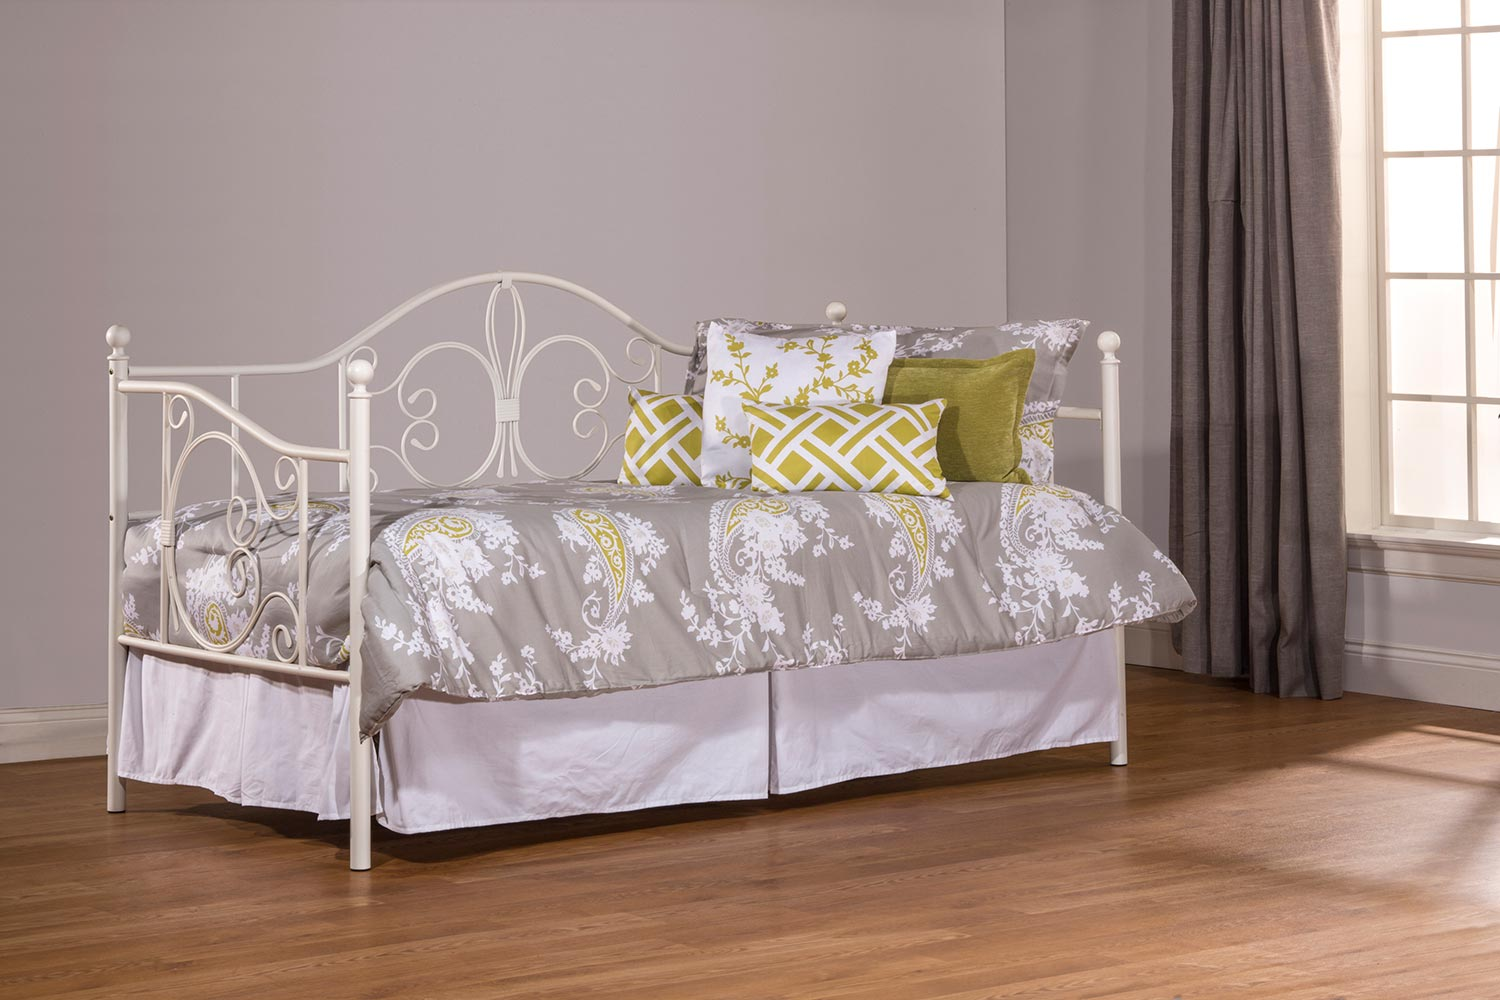 Hillsdale Ruby Daybed with Suspension Deck and Roll Out Trundle Unit - Textured White